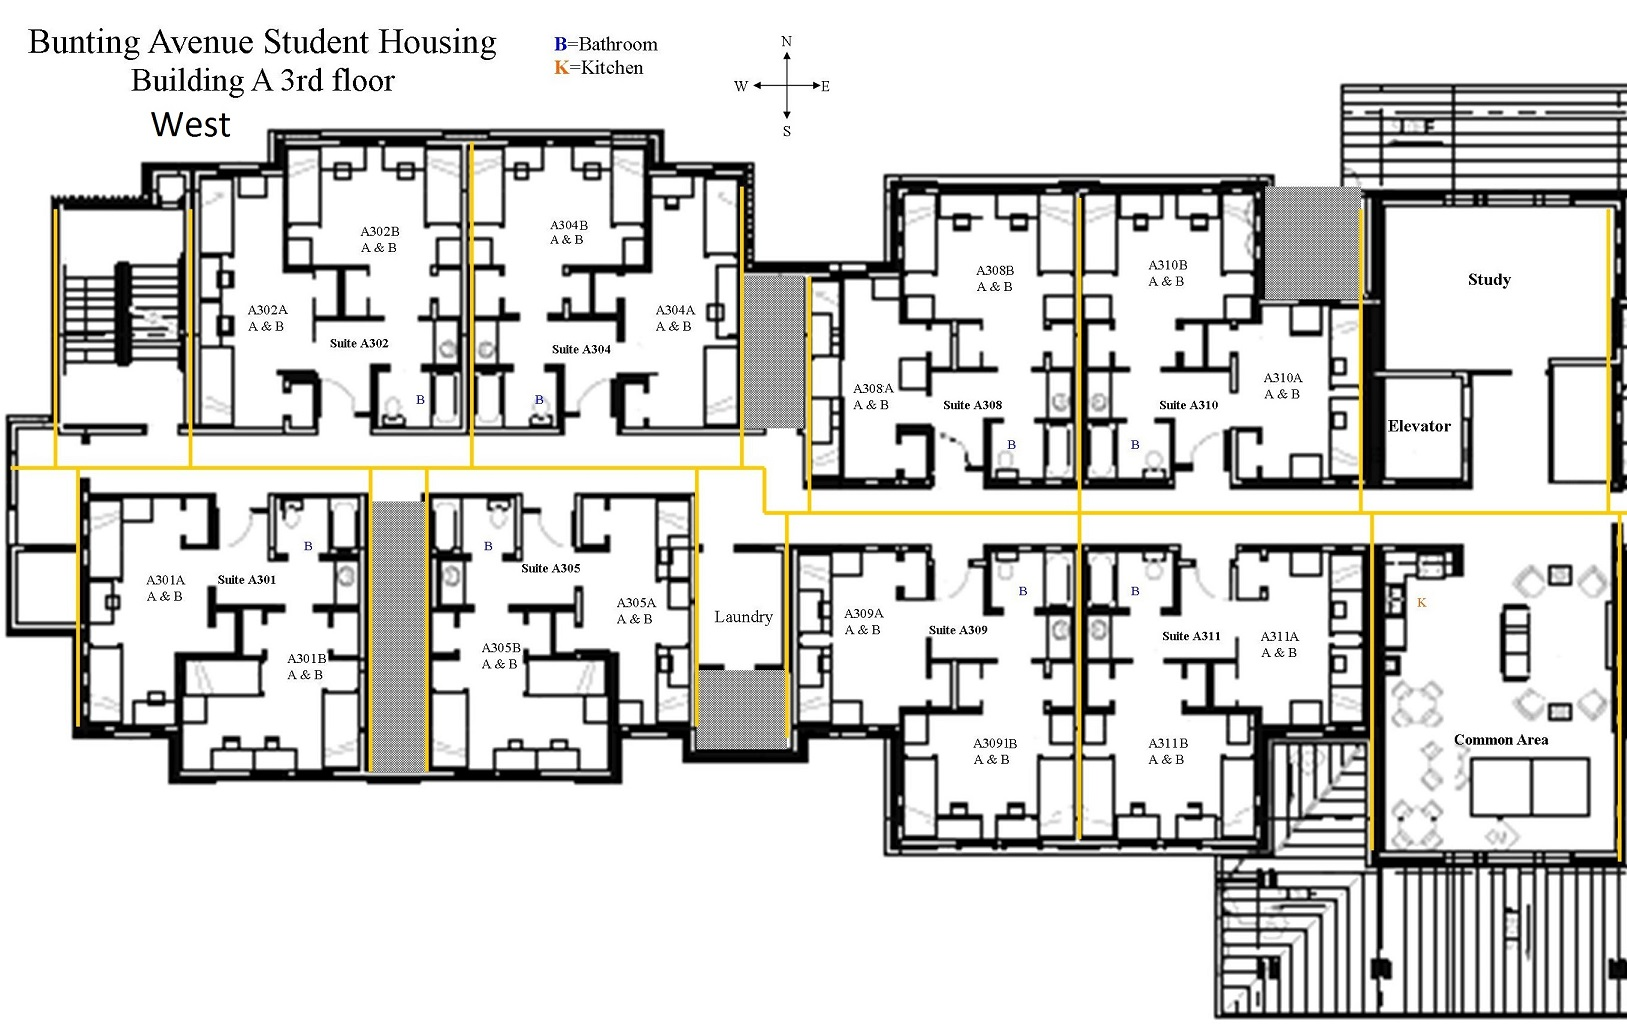 Kitchenette Floor Plans Bunting Colorado Mesa University